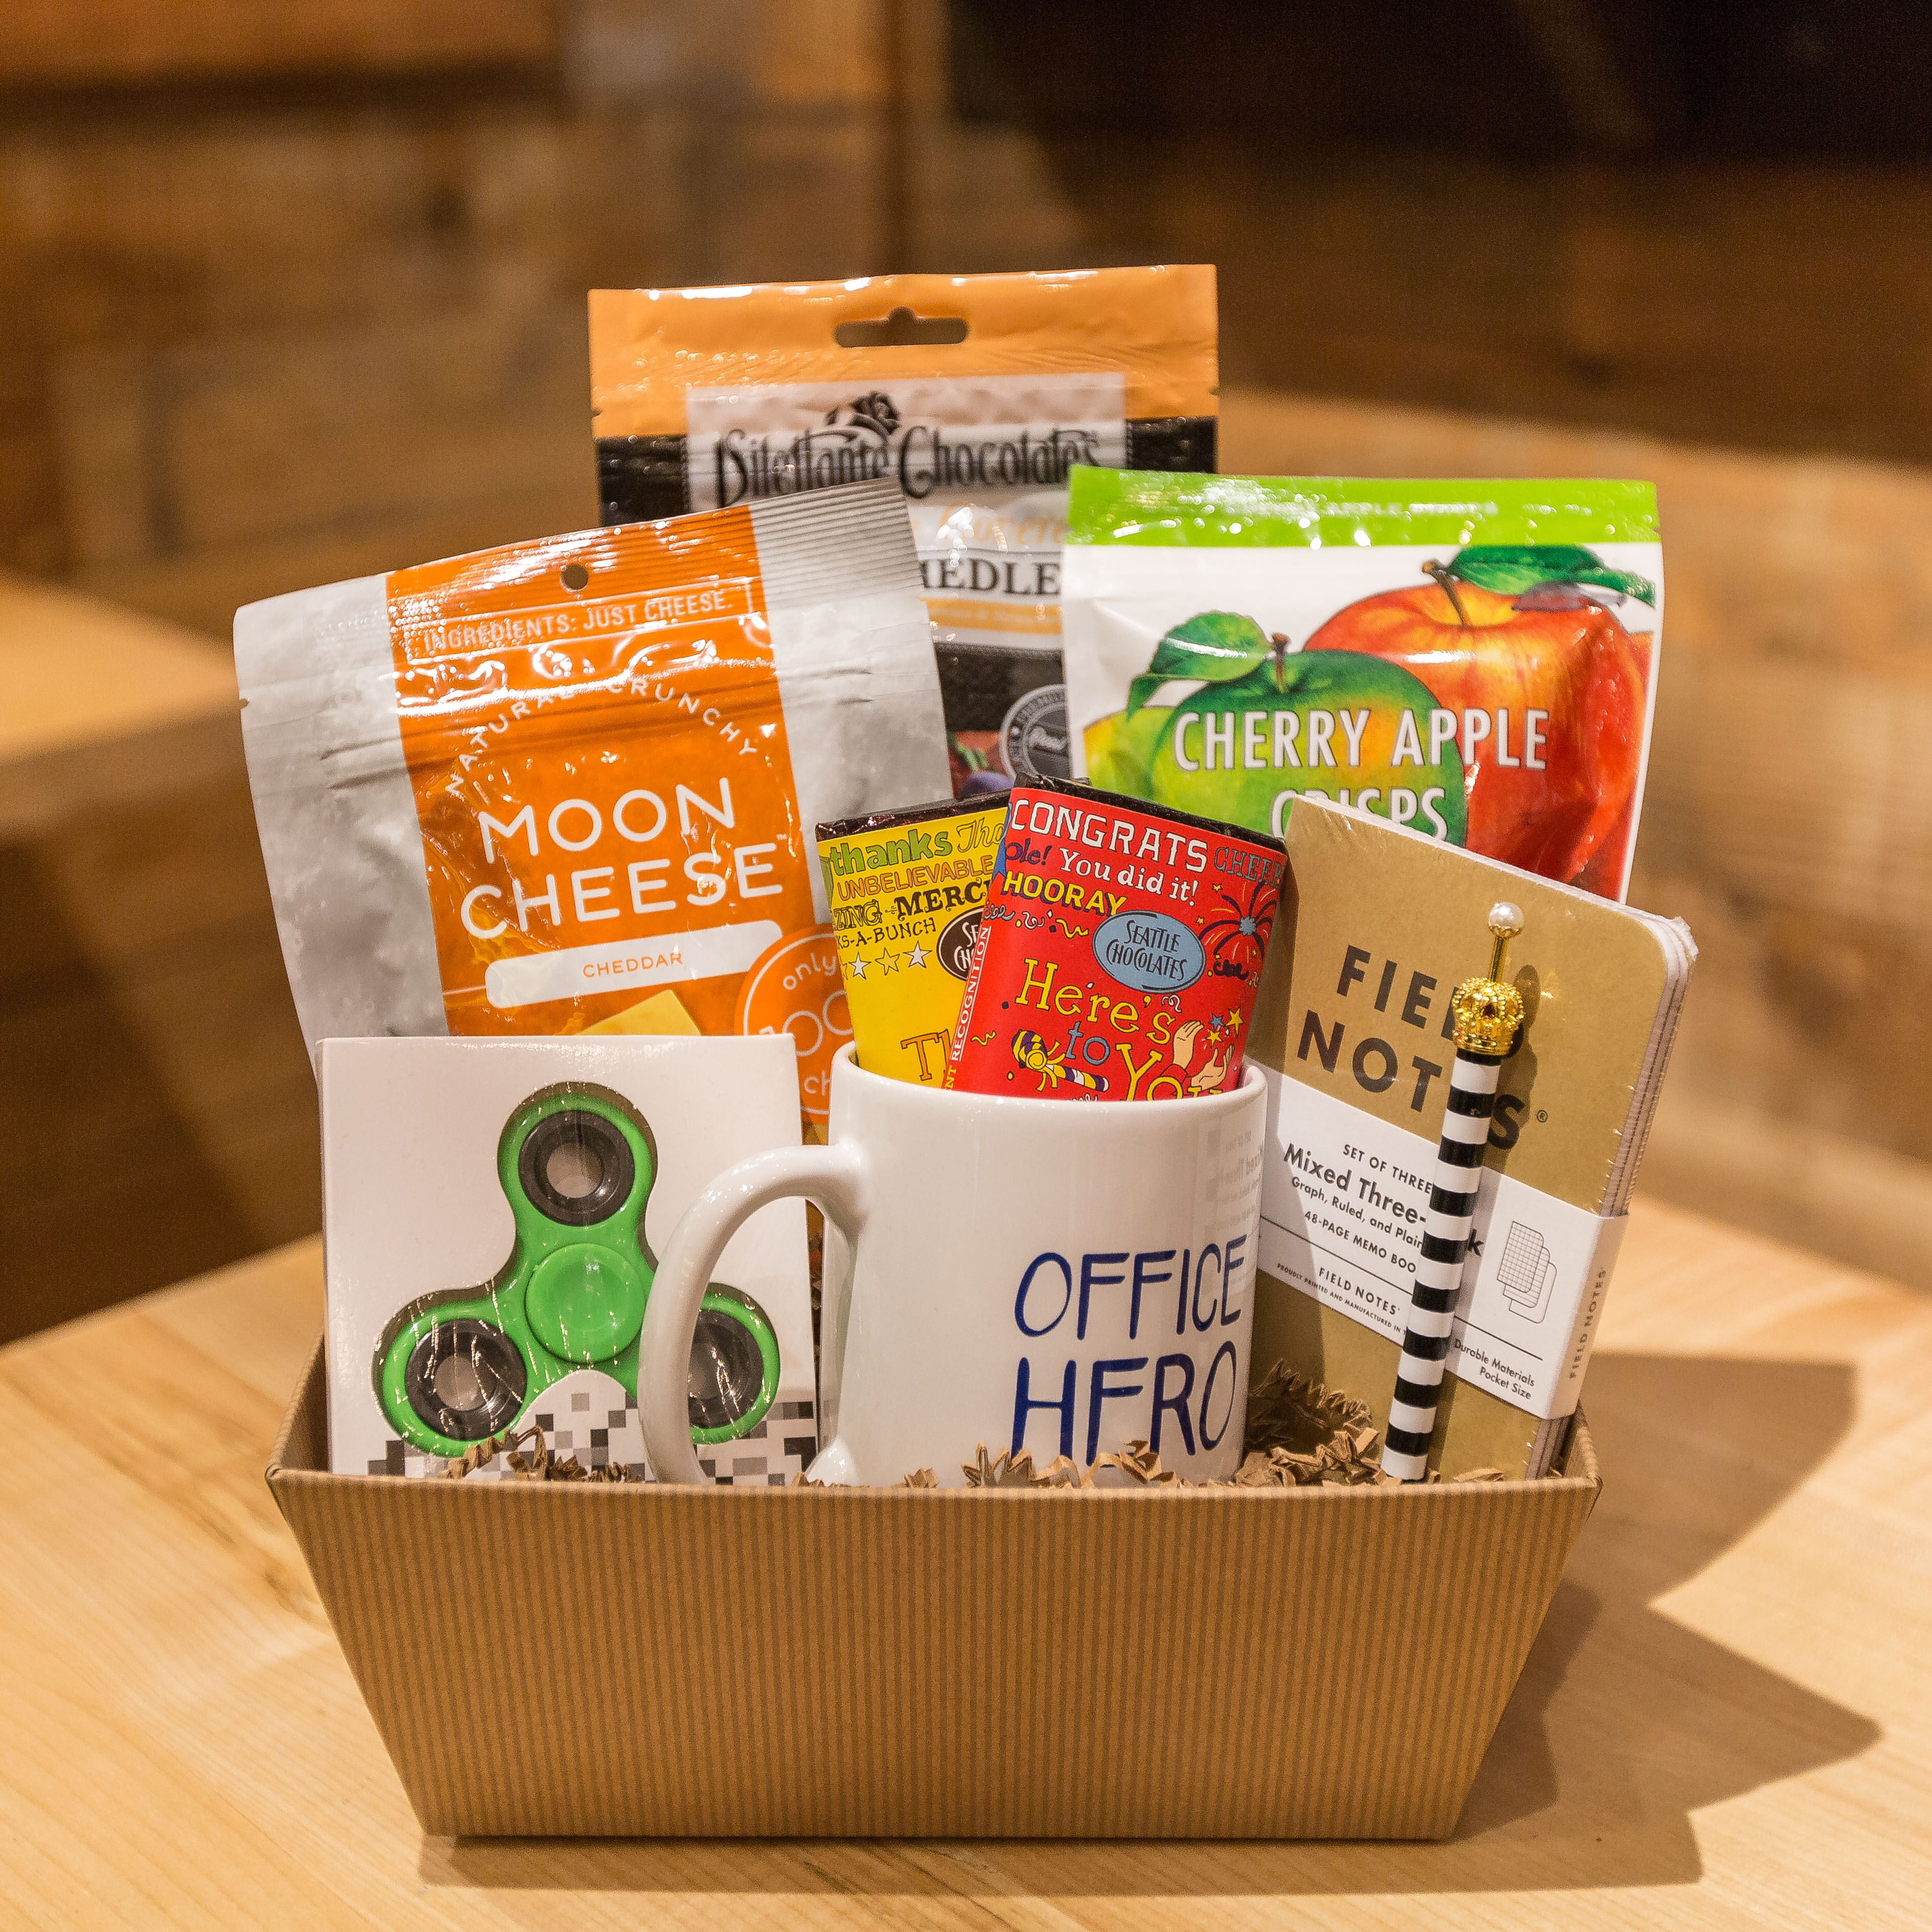 Office Hero Gift Basket